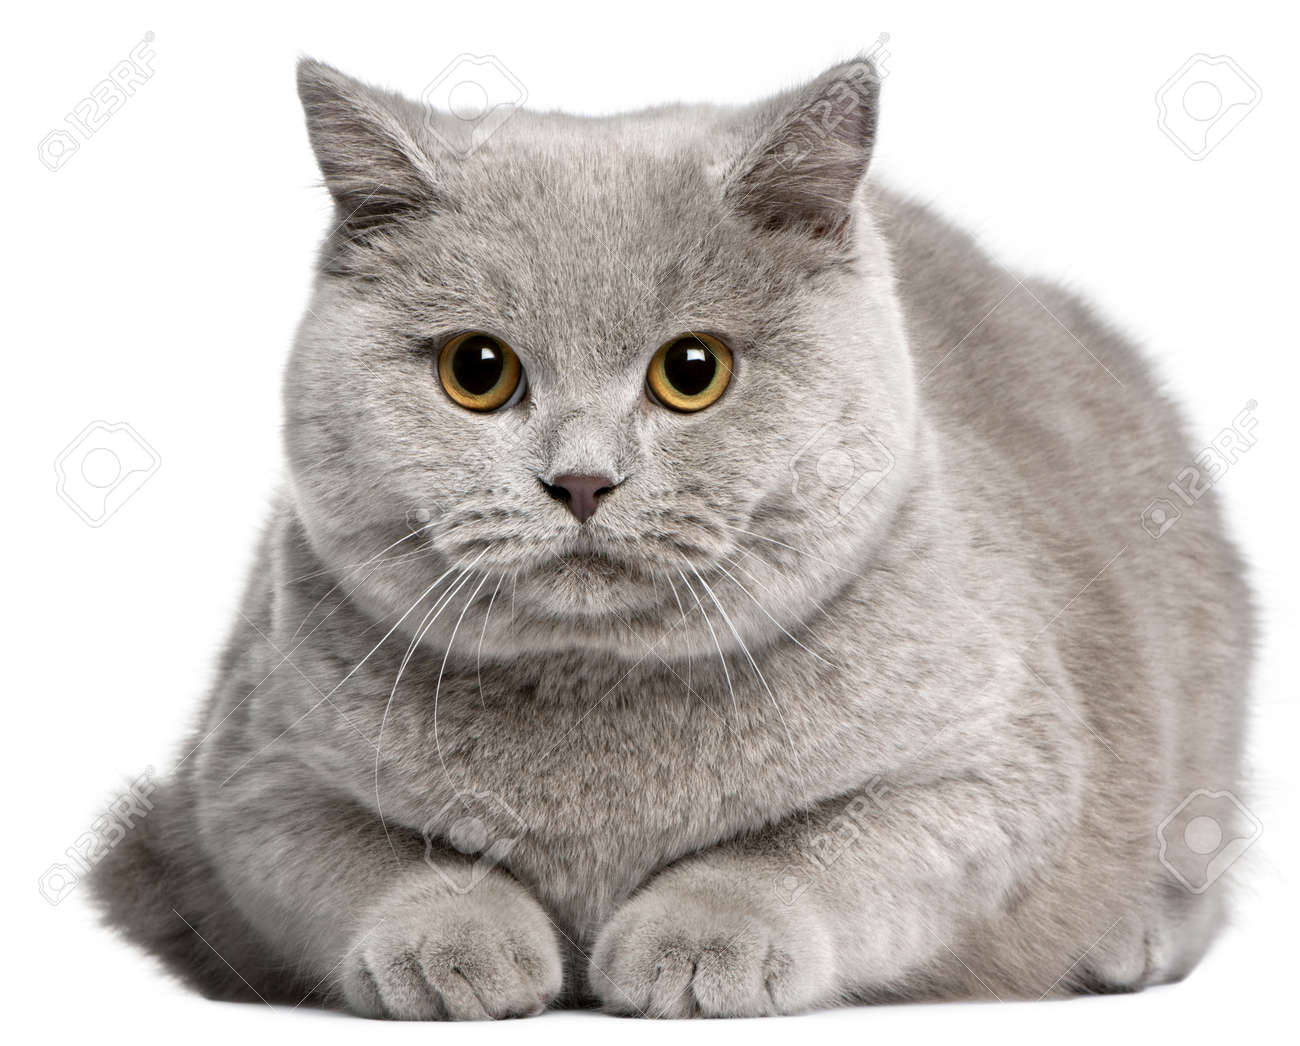 British Shorthair Cat 8 Months Old In Front White Background